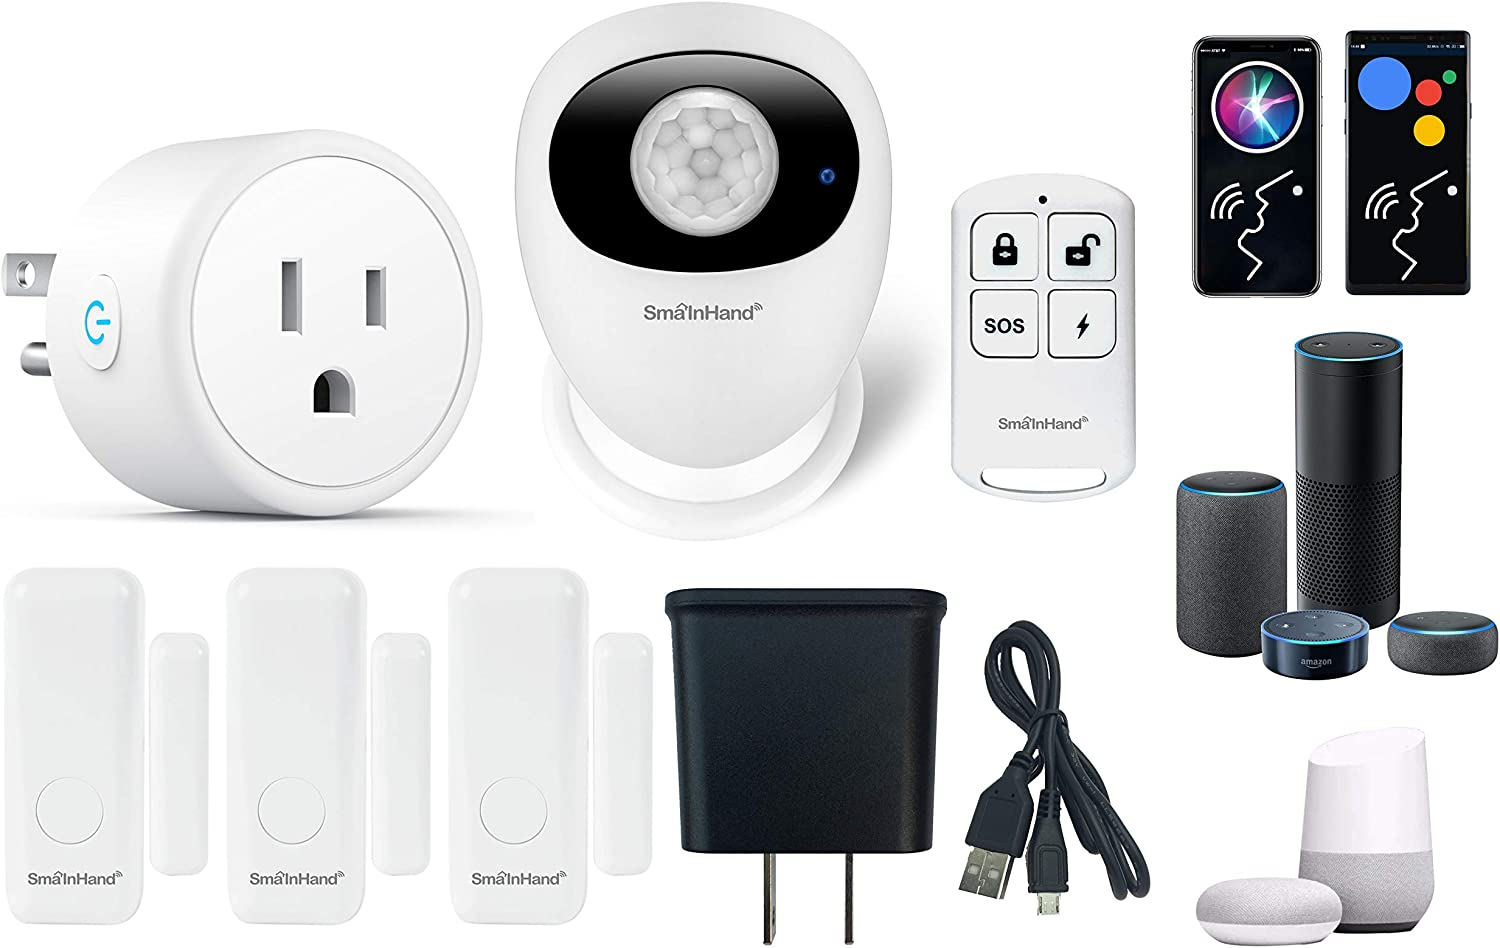 Door Alarm System for Home Alarm System, Alexa Google Voice Control Home Security System Wireless, Smart Home Security Alarm System with Smart Plug Outlet, Door Security Window Alarms 2.4G(no 5G WiFi)